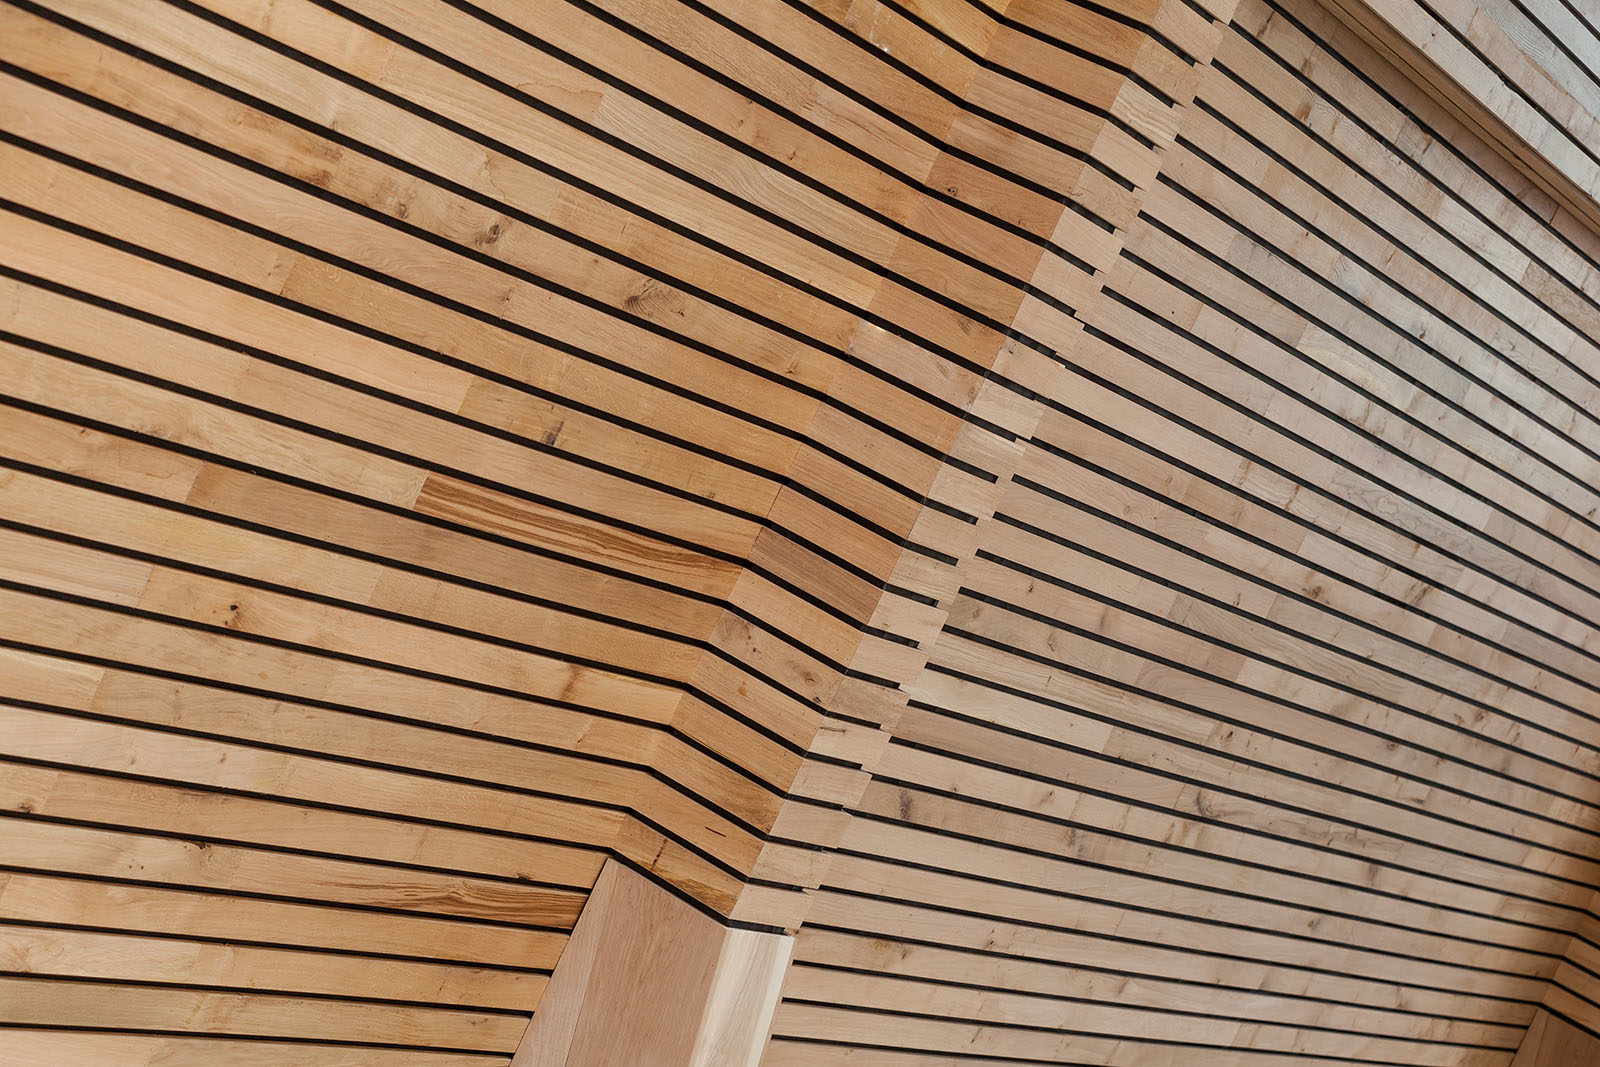 oak-cladding-header